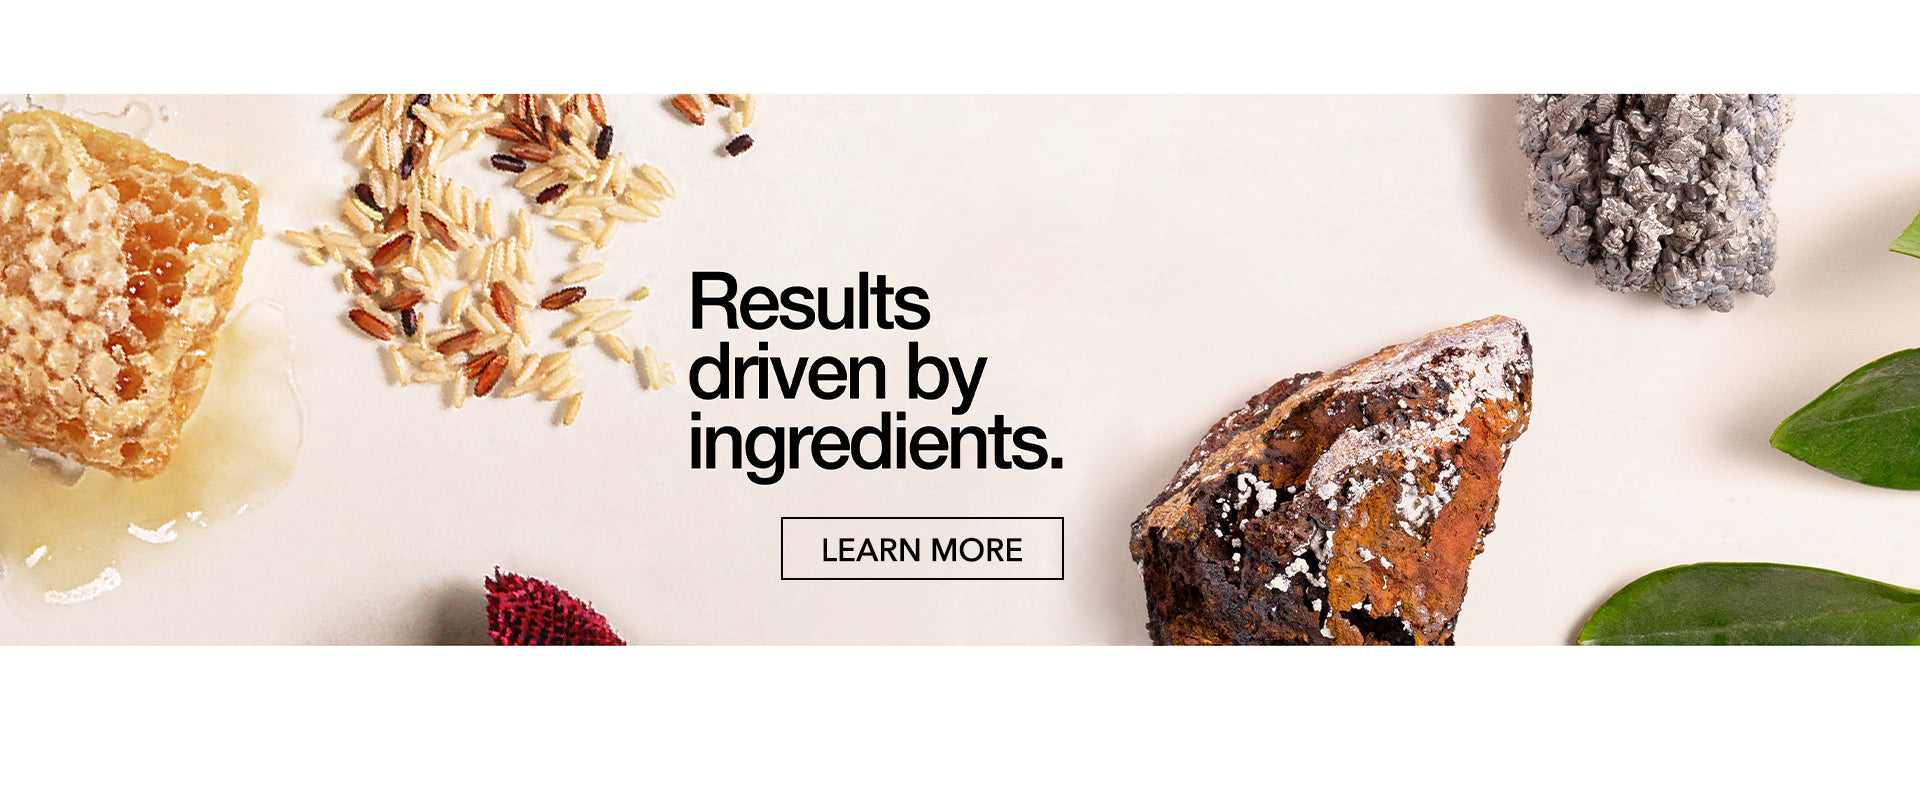 Results driven by ingredients.